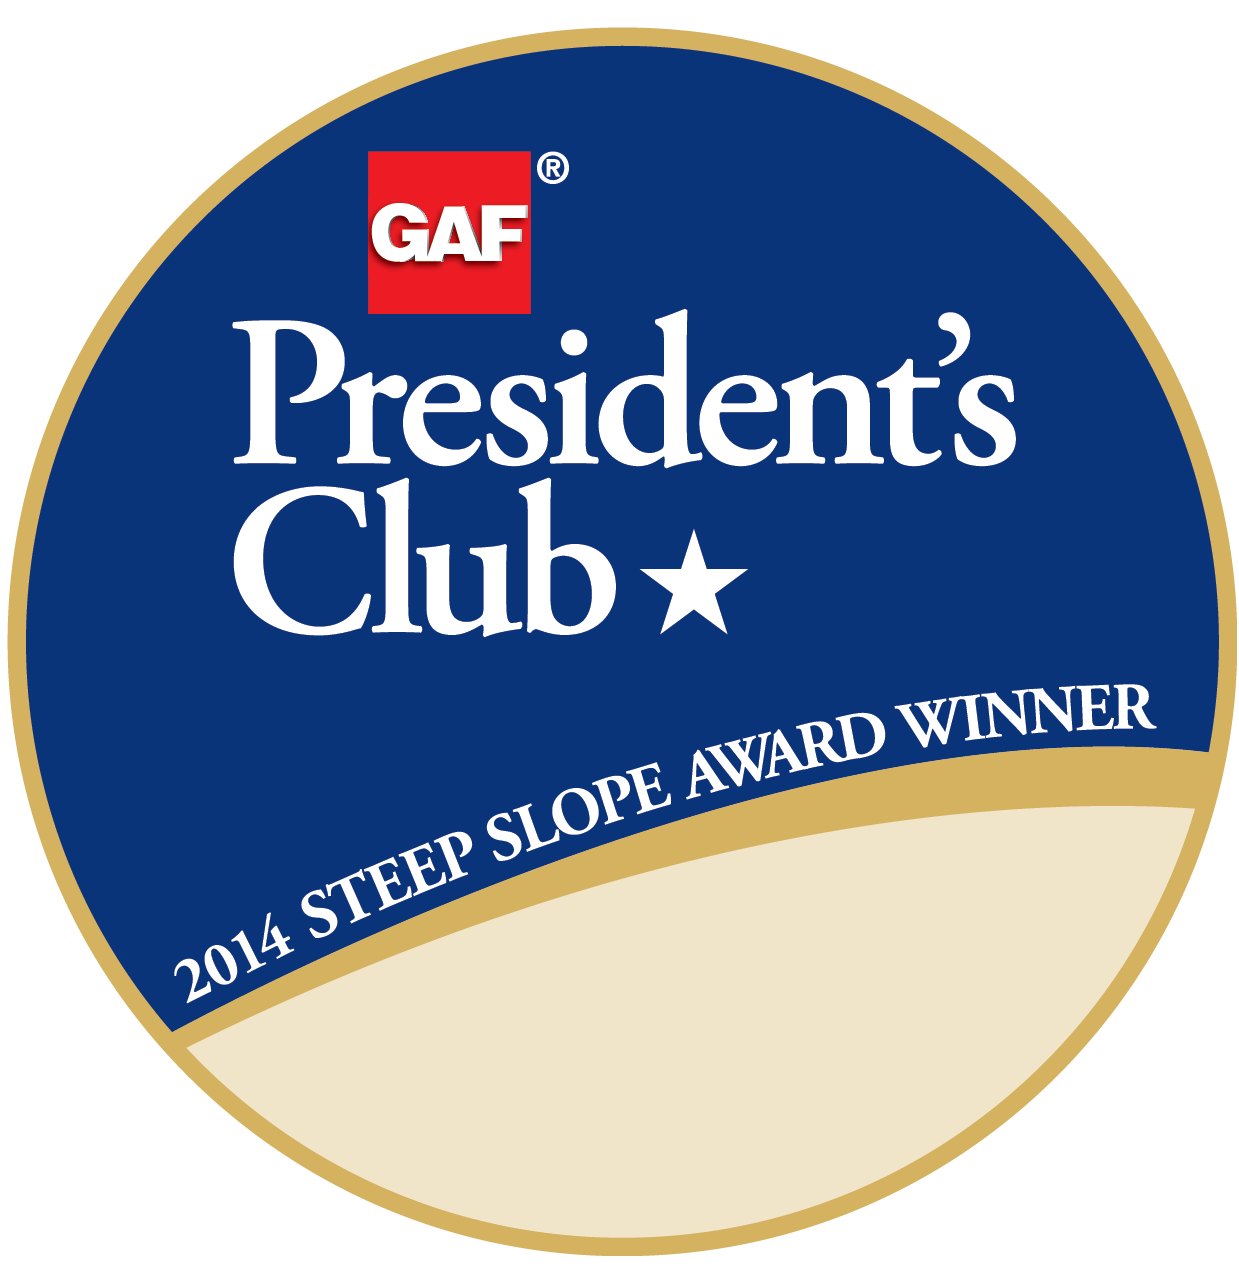 Tortorice Contractors Receives GAF's Prestigious 2014 President's Club Award